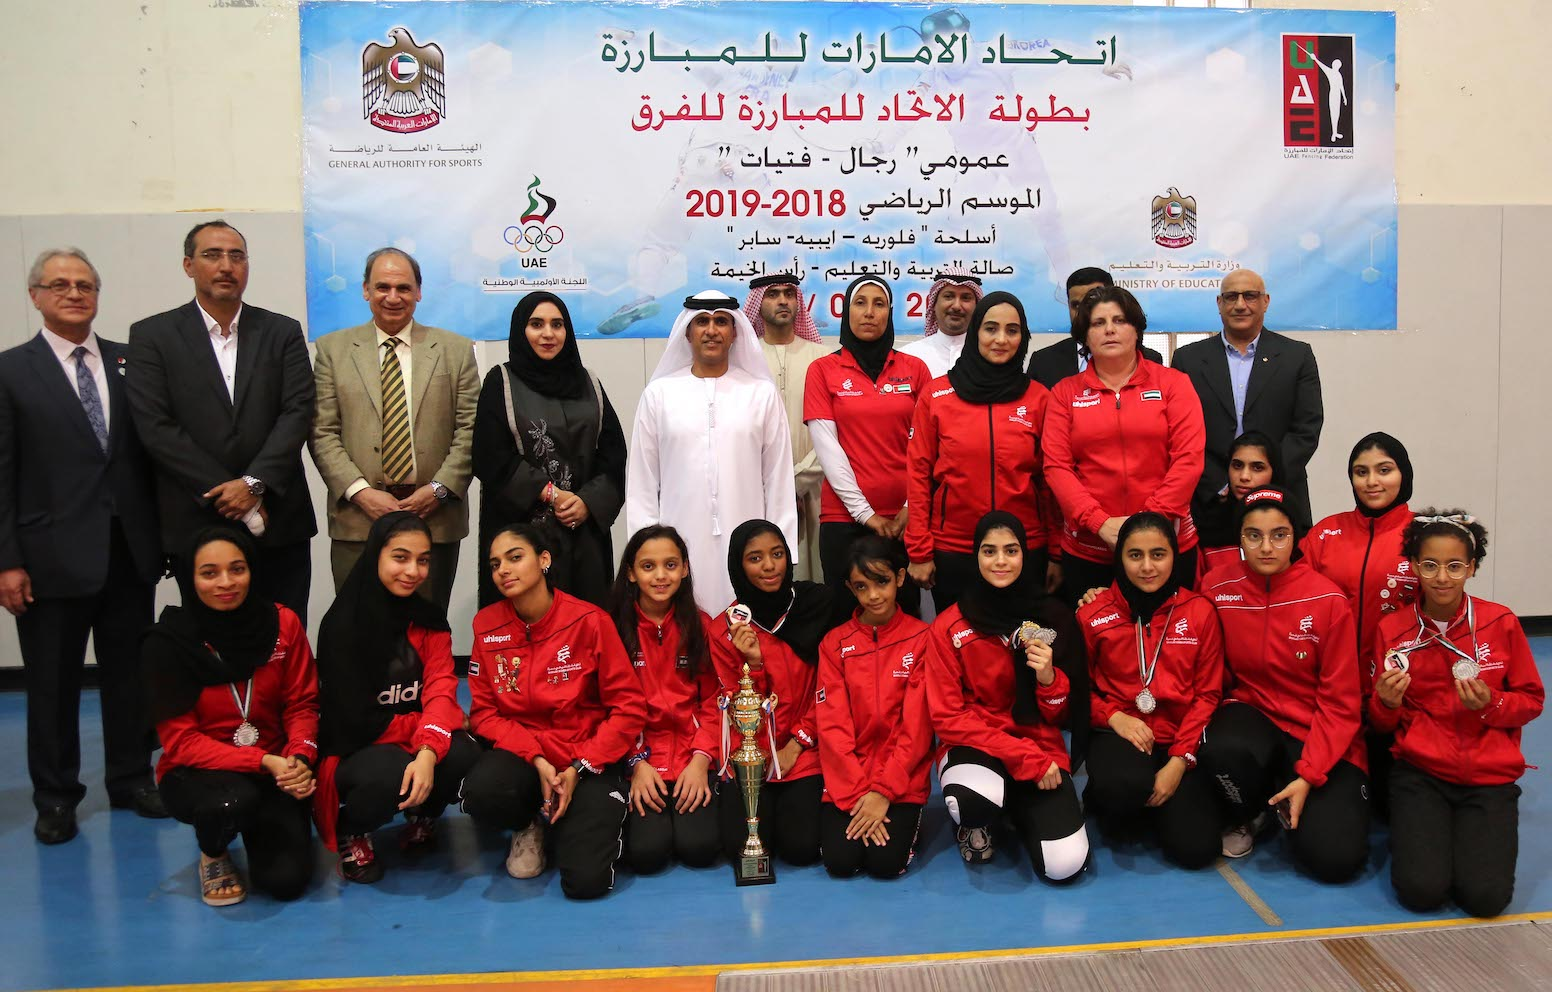 swsc athletes bag 16 medals in 6 sports events in march  3